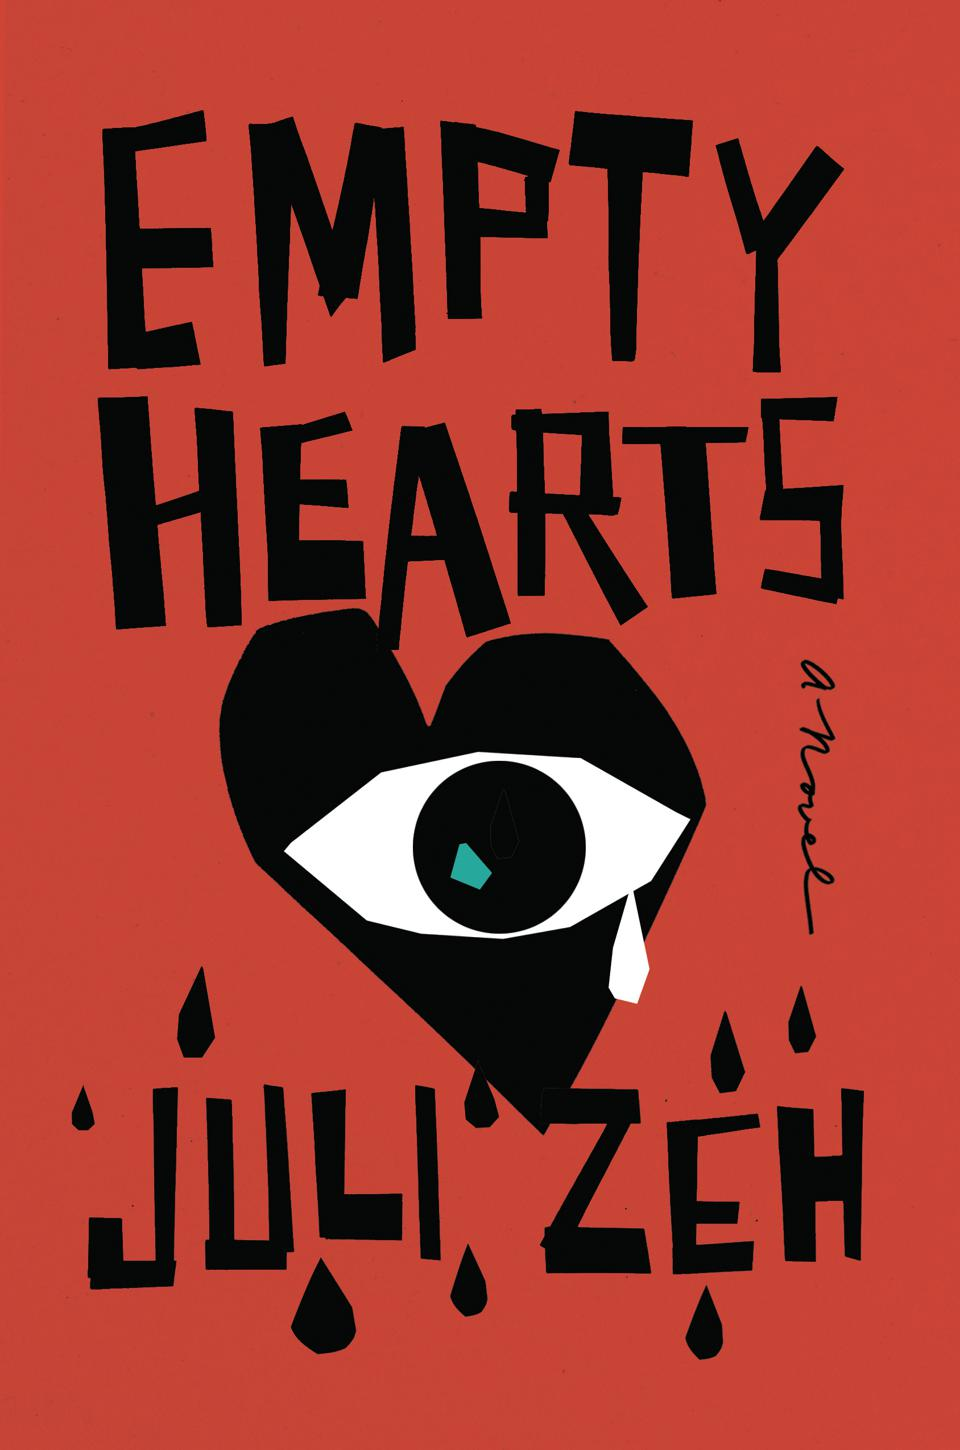 empty hearts juli zeh novel fiction book cover emily mahon